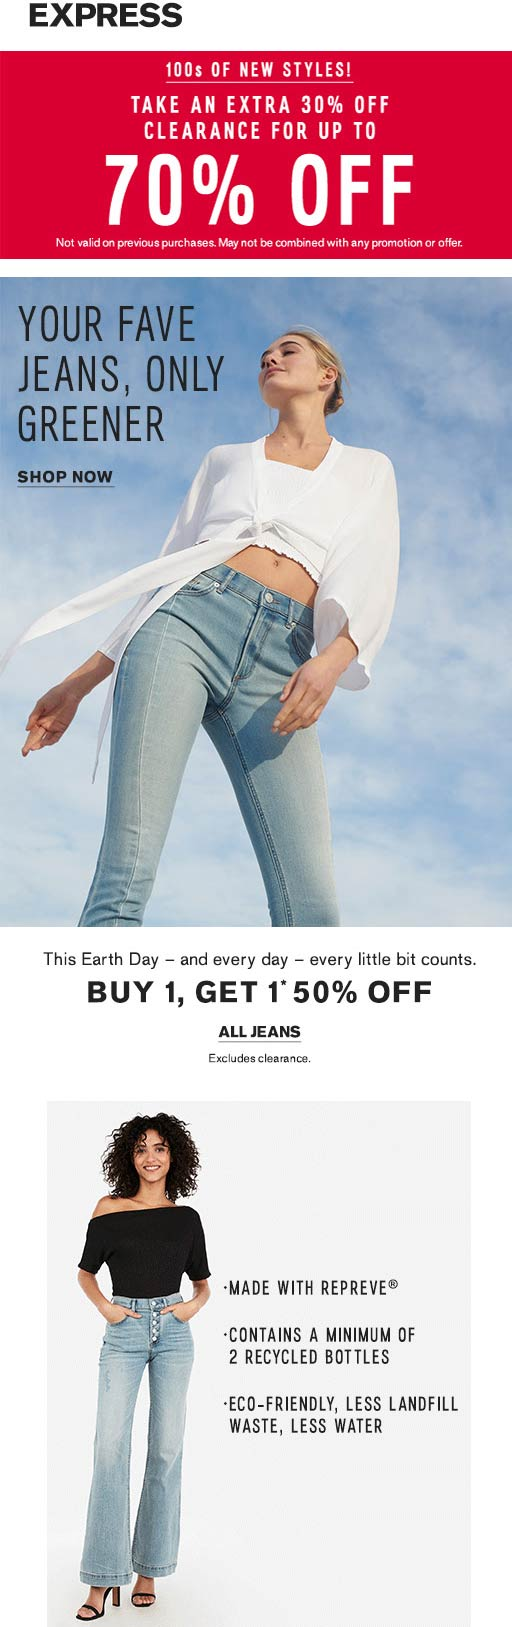 Express.com Promo Coupon Extra 30% off clearance & more at Express, ditto online